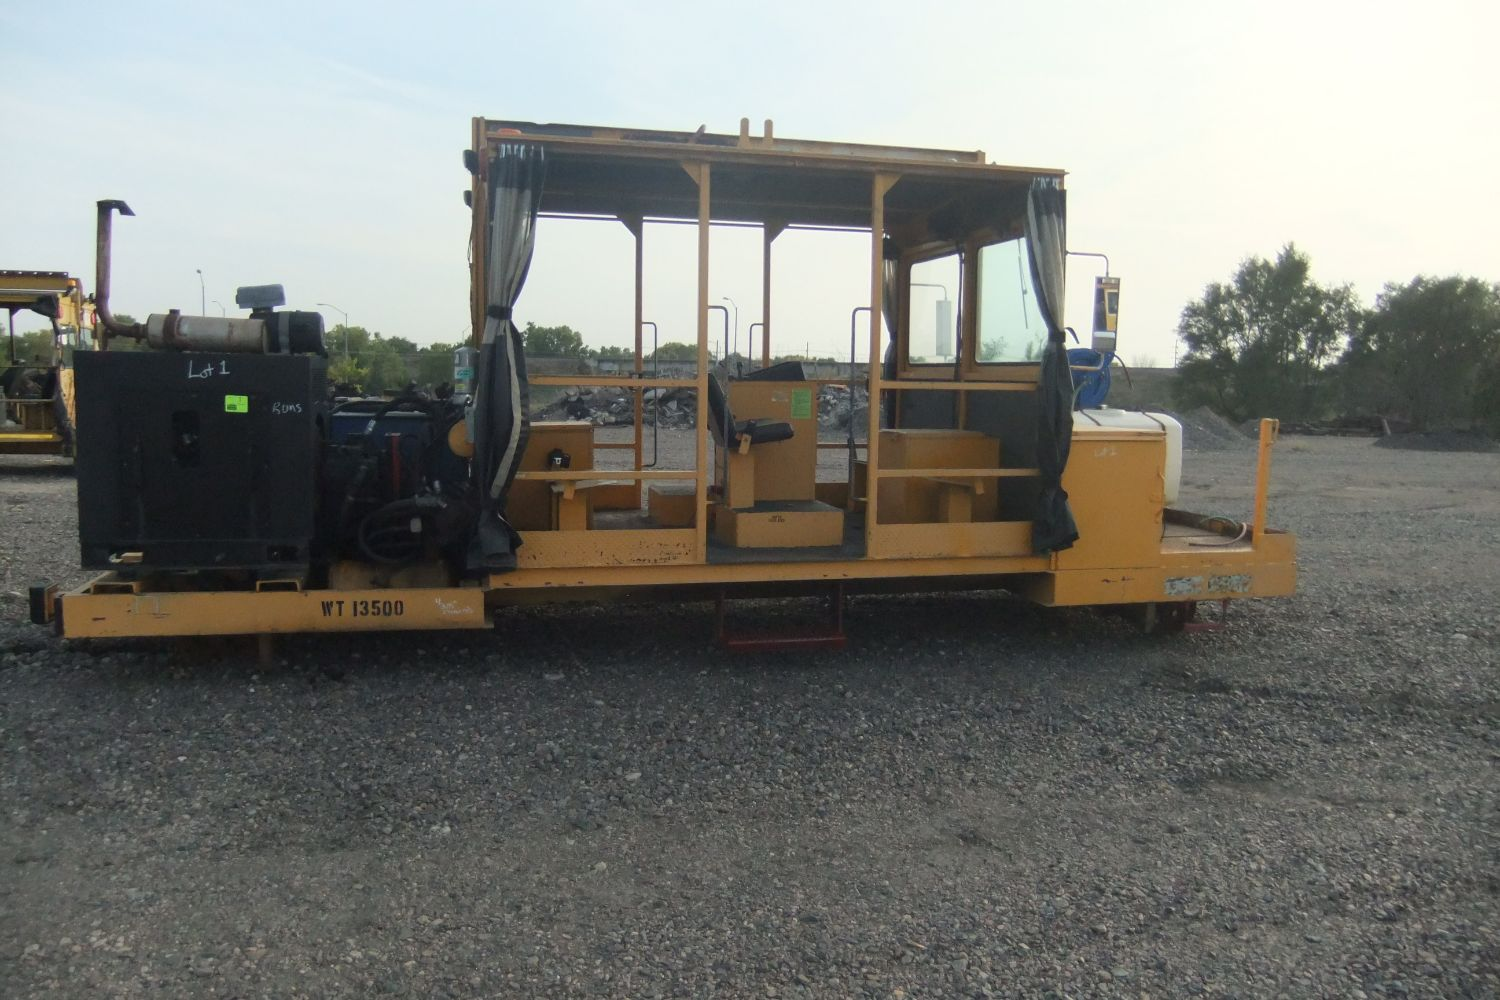 ABSOLUTE PUBLIC AUCTION - FOR UNION PACIFIC RR - LARGE SELECTION OF SURPLUS MofWAY & HEAVY EQUIPMENT